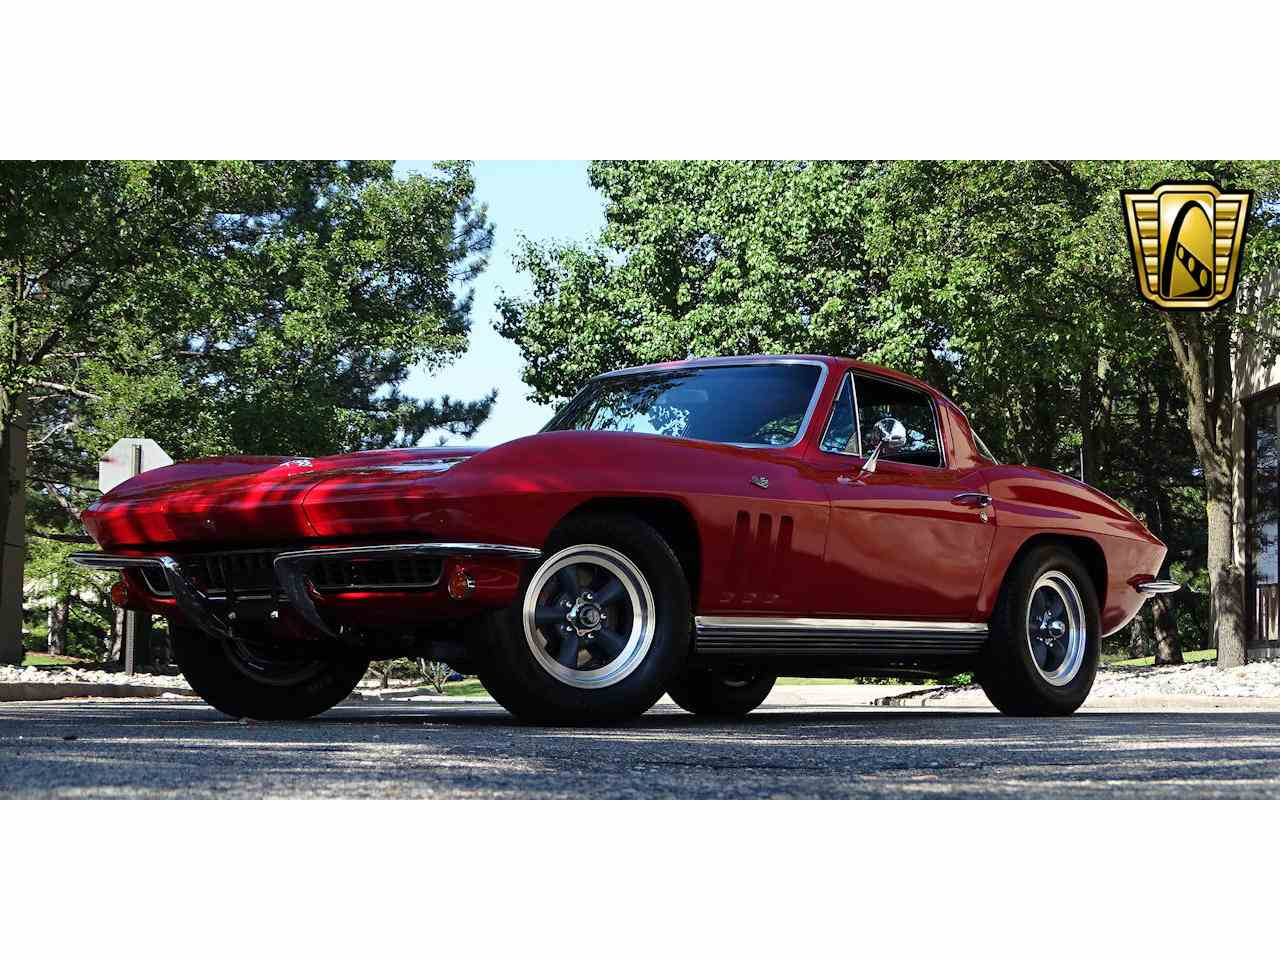 Large Picture of Classic 1966 Corvette located in Michigan - $68,000.00 Offered by Gateway Classic Cars - Detroit - LH96